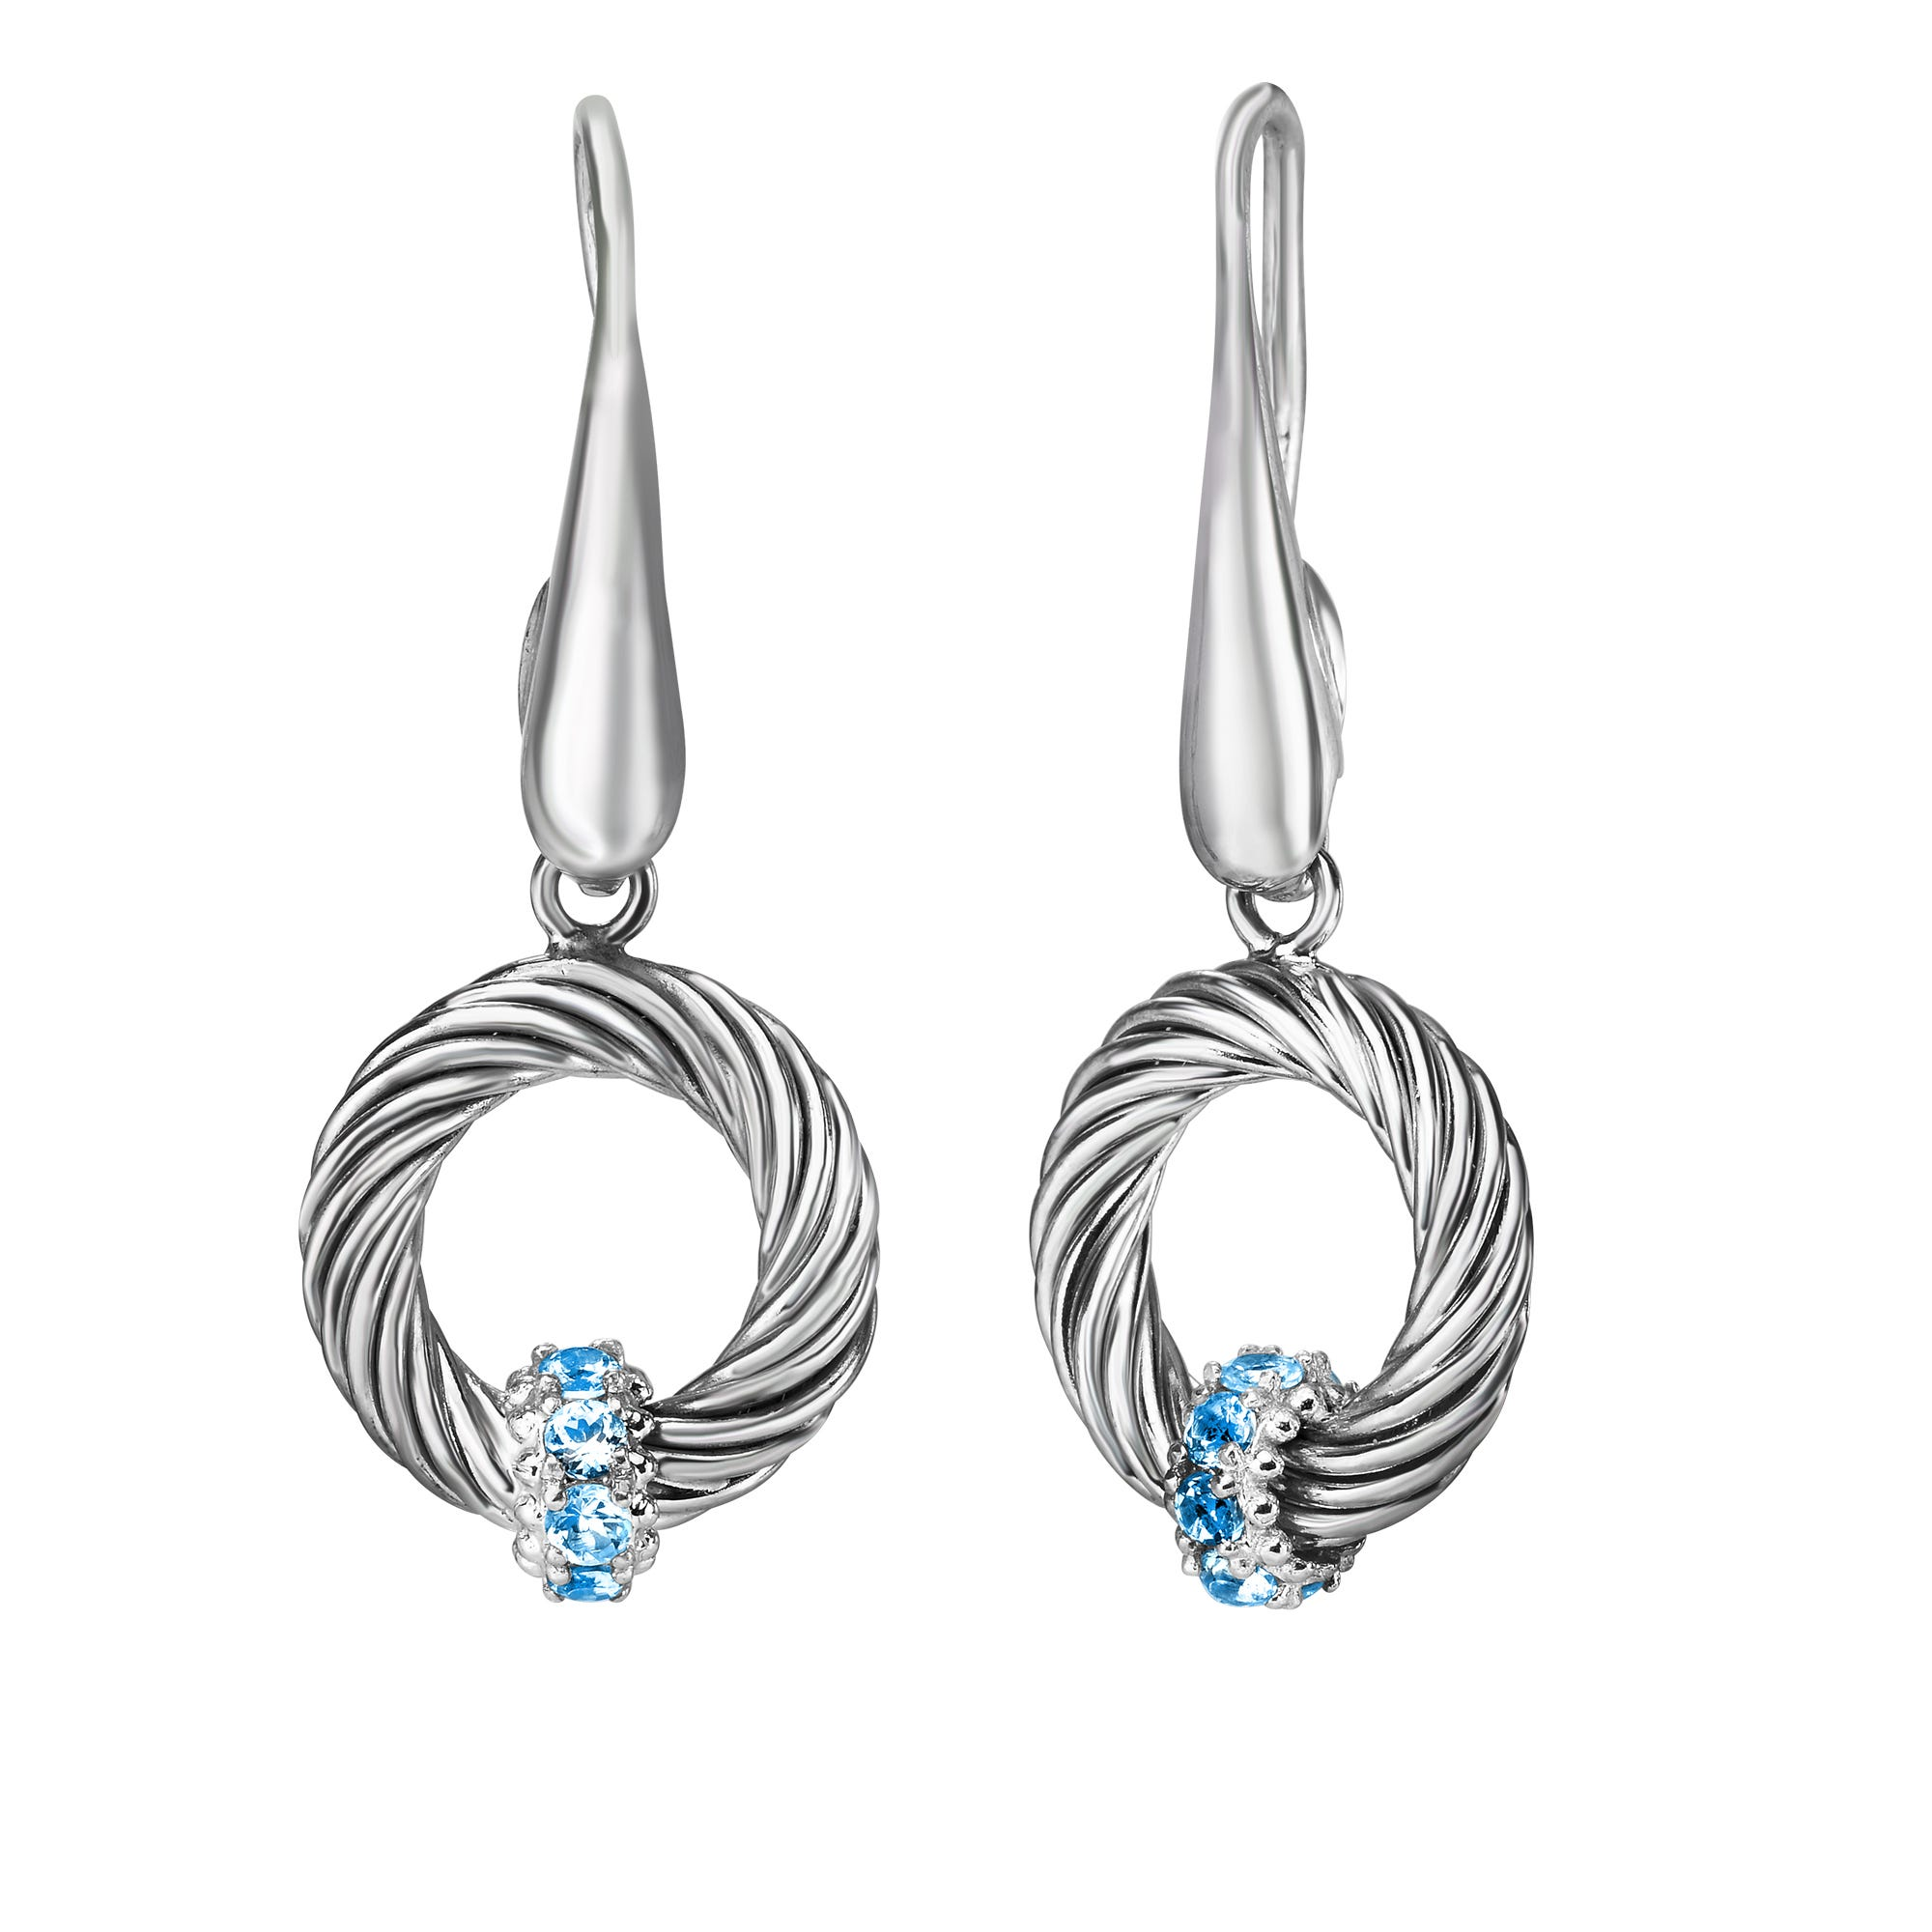 Blue Topaz Drop Earrings in Sterling Silver